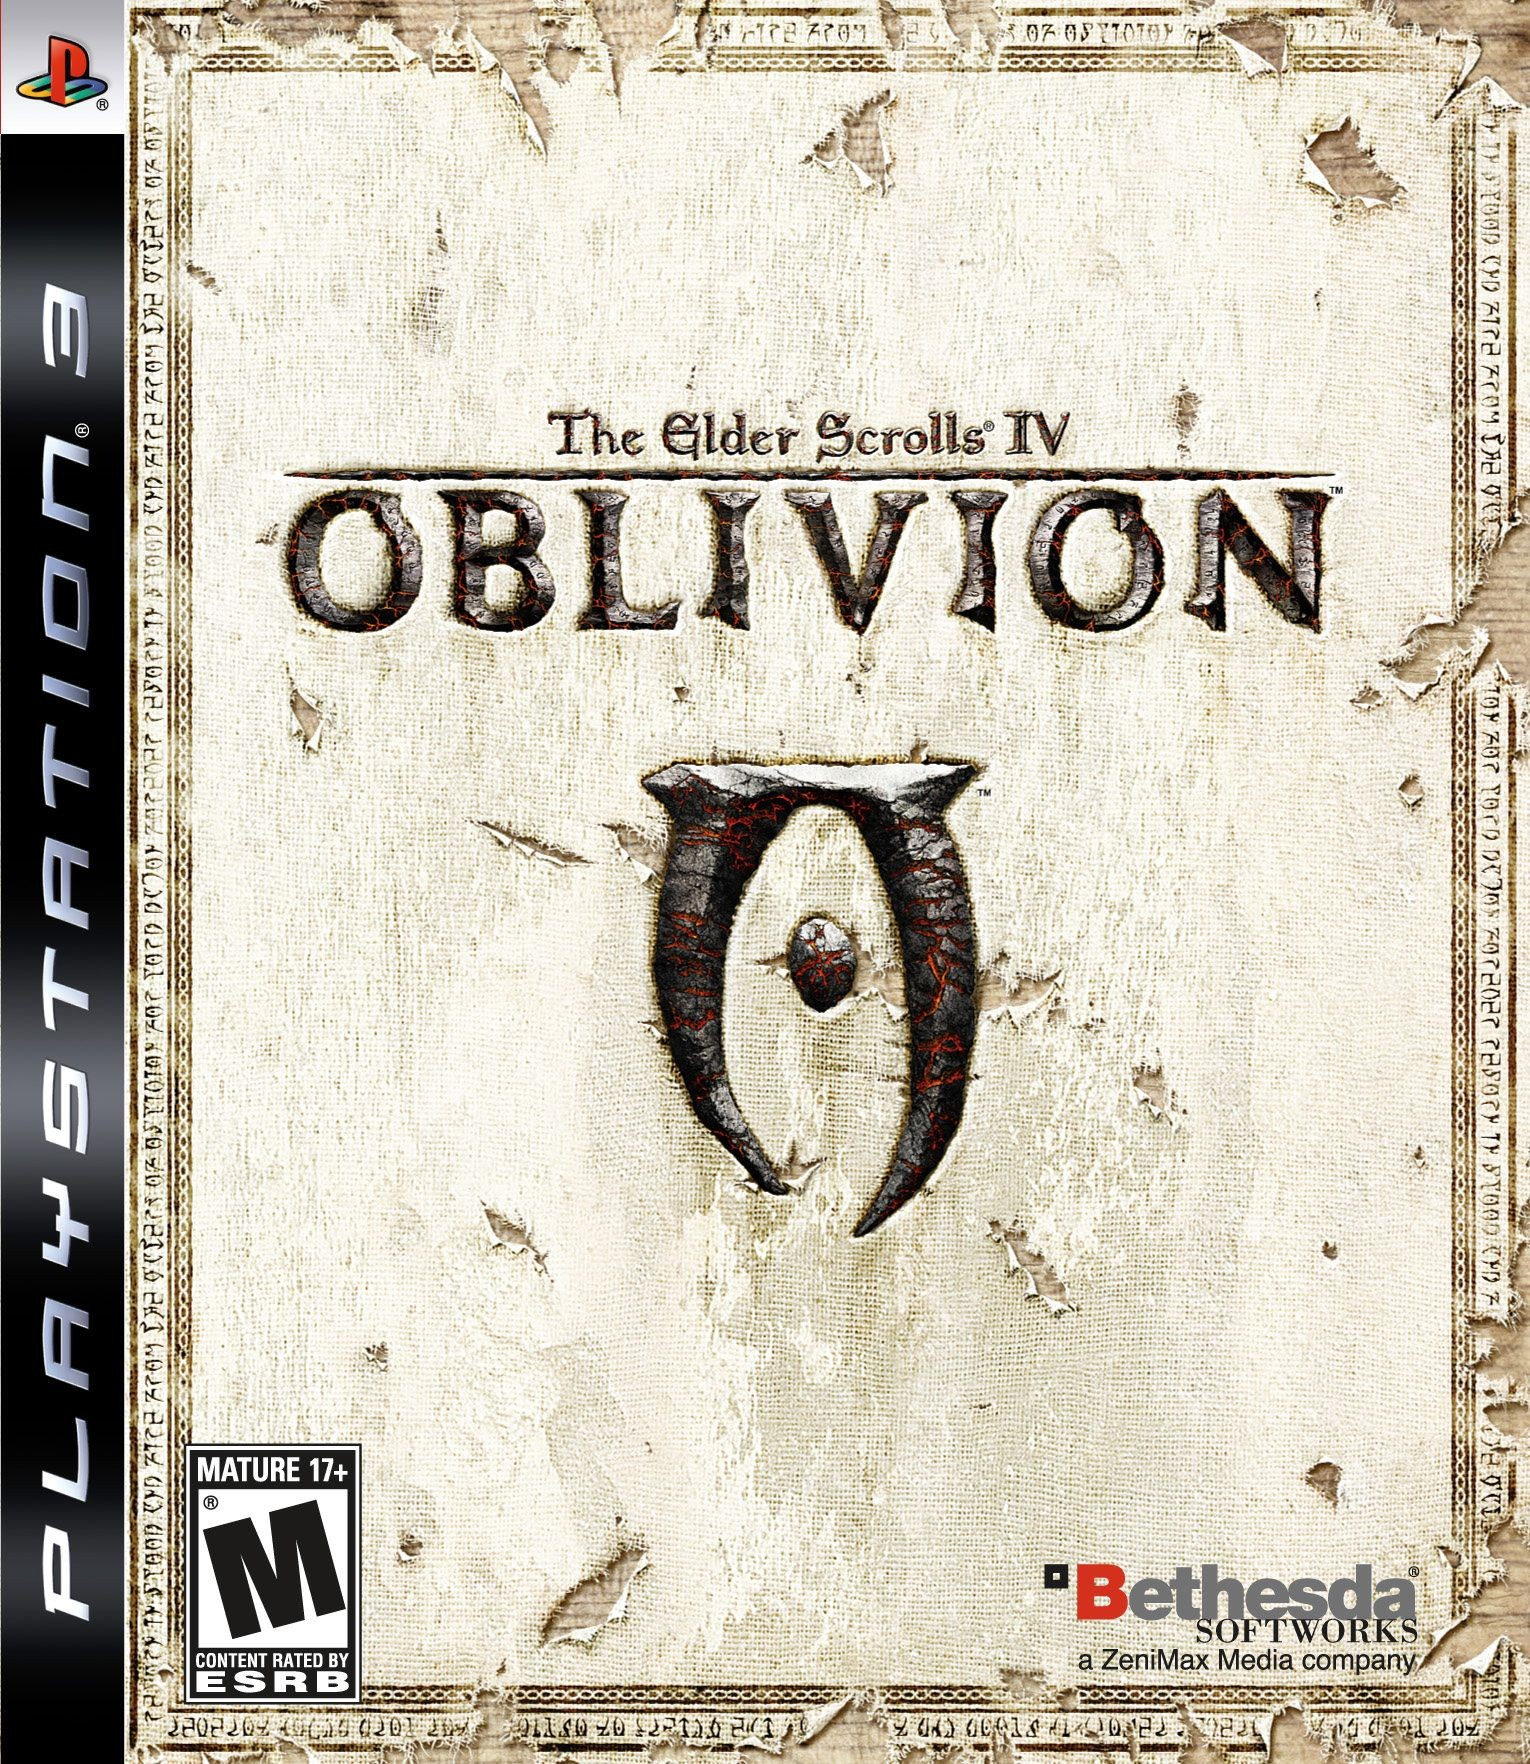 The Elder Scrolls IV Oblivion б/в PS3